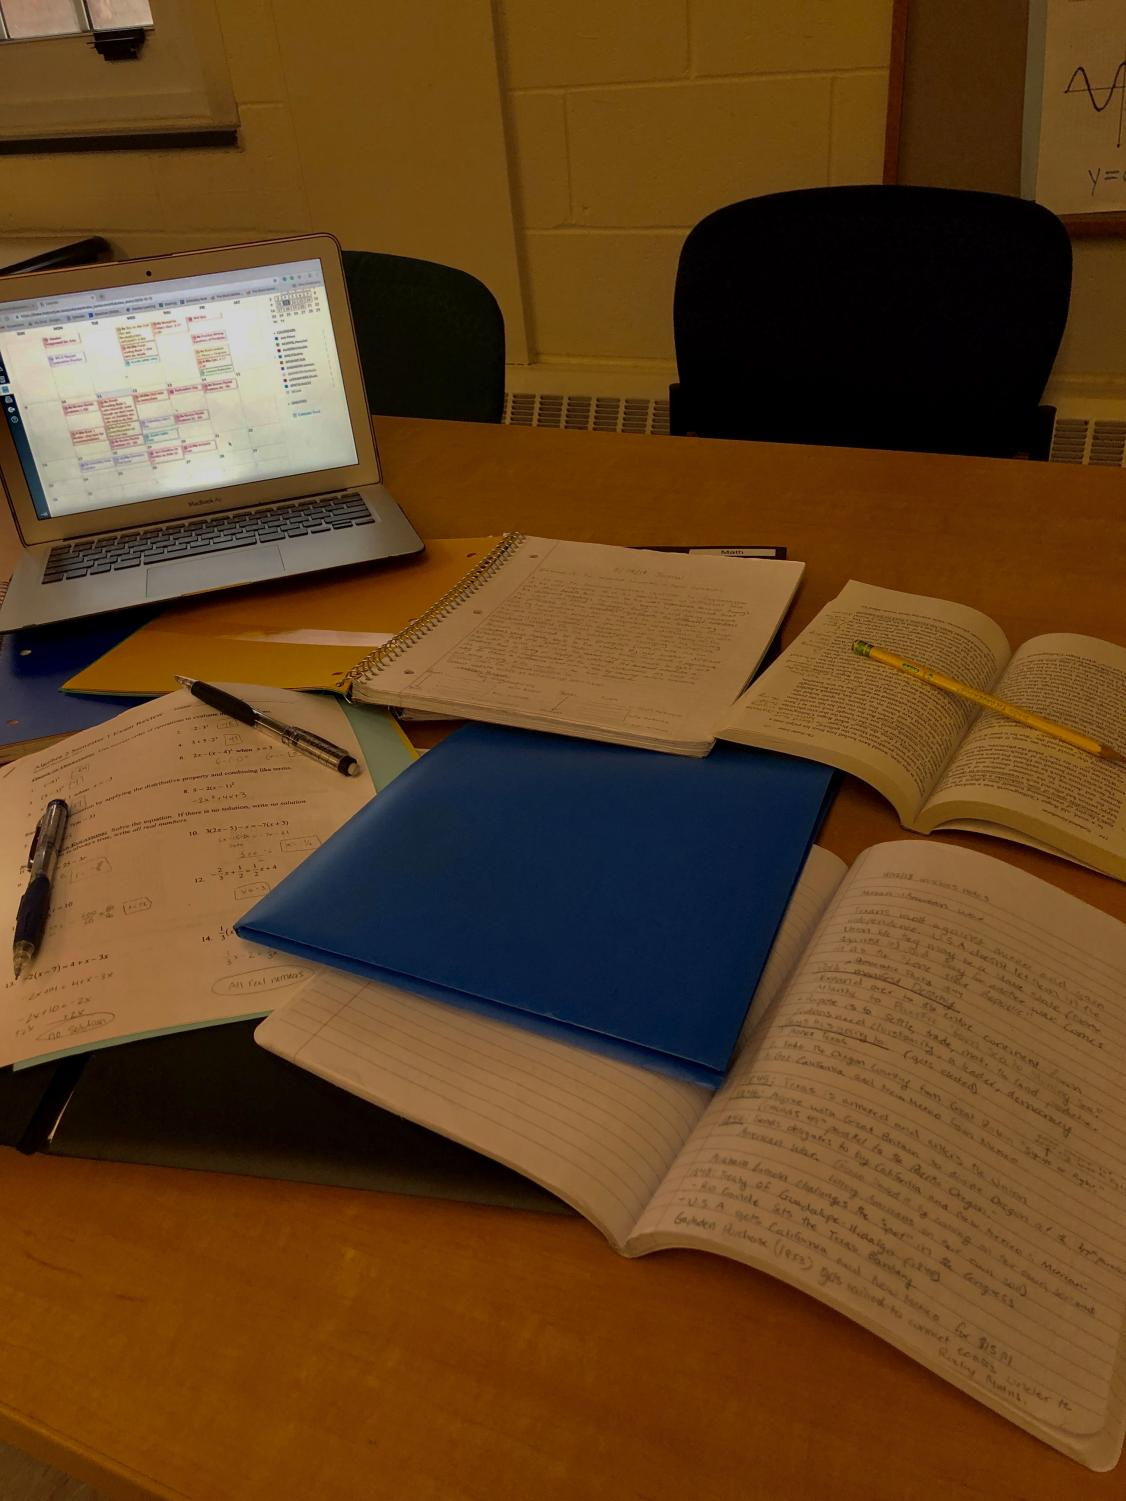 A common scene for students during finals weeks. However, organization can lead to success.